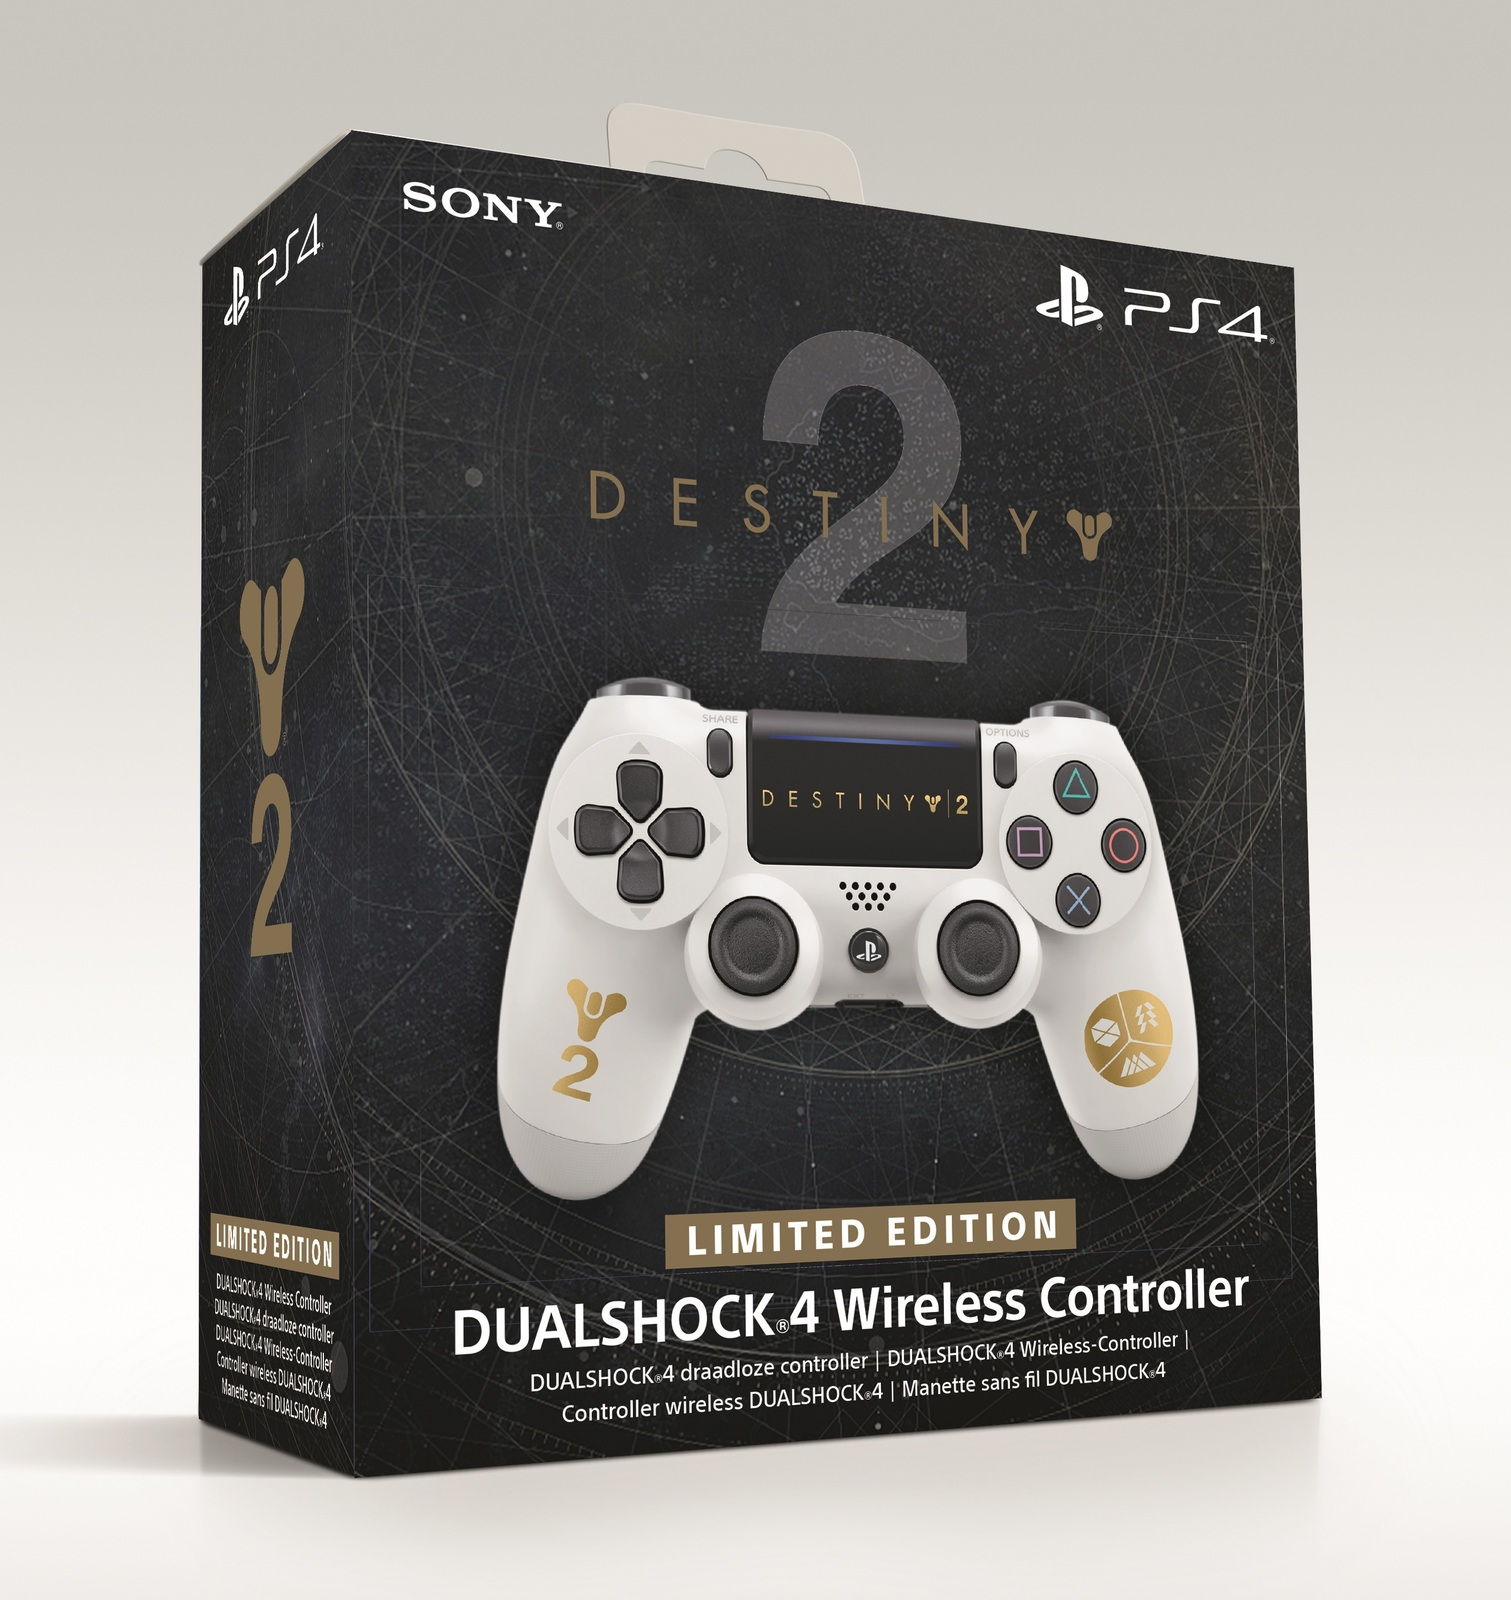 PS4 Destiny 2 Dual Shock 4 V2 Wireless Controller (Limited Edition) for PS4 image